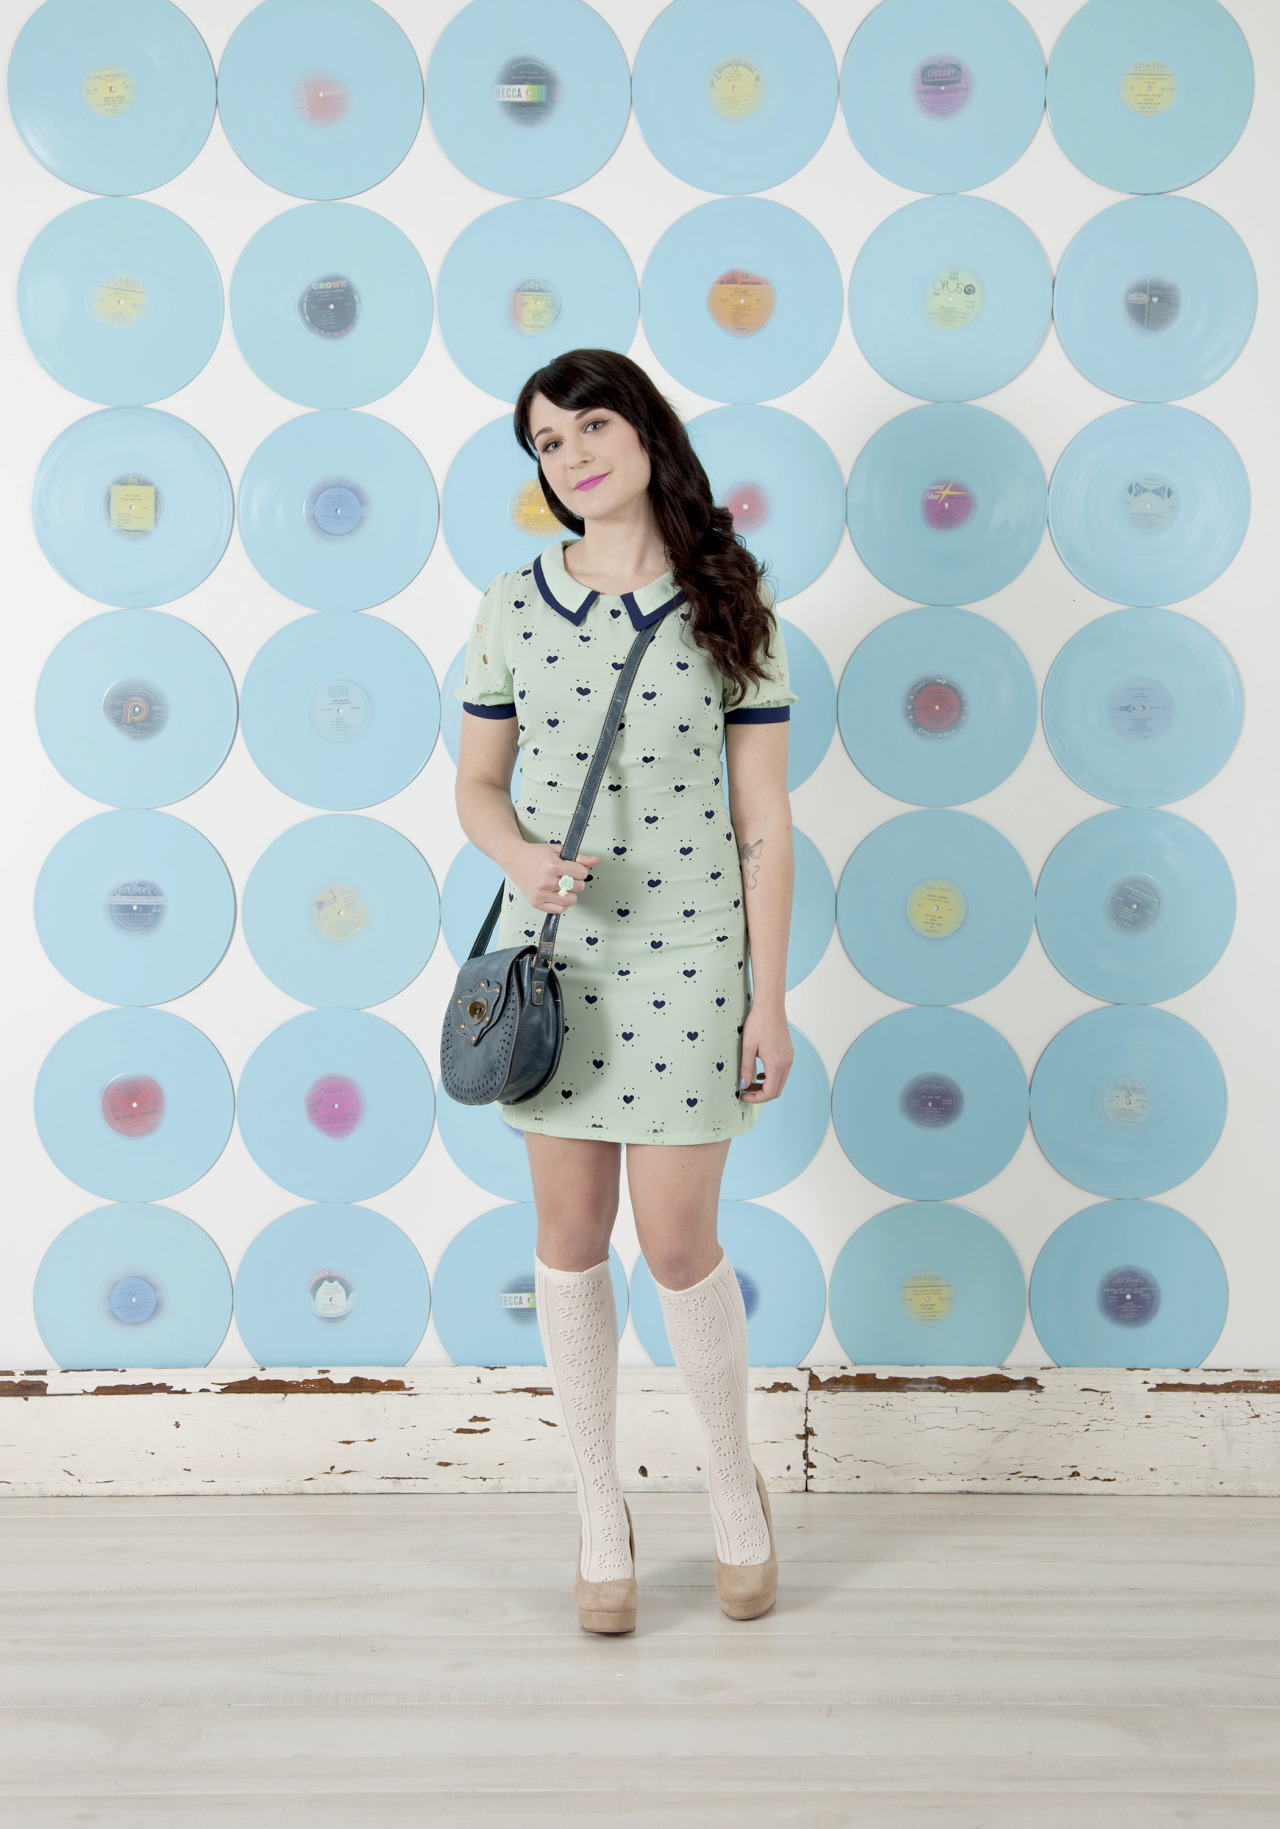 modcloth:  The Piece of Your Heart Dress would be so adorable for a Valentine's Day date look! Though it will likely be too cold in Pittsburgh for me to wear mine as I did here, I think it would still be lovely with opaque tights and a cardigan. :)  <3 Jess, ModStylist Need styling suggestions, trend tips, or dress details? Ask a ModStylist and your question might be featured on our feed!